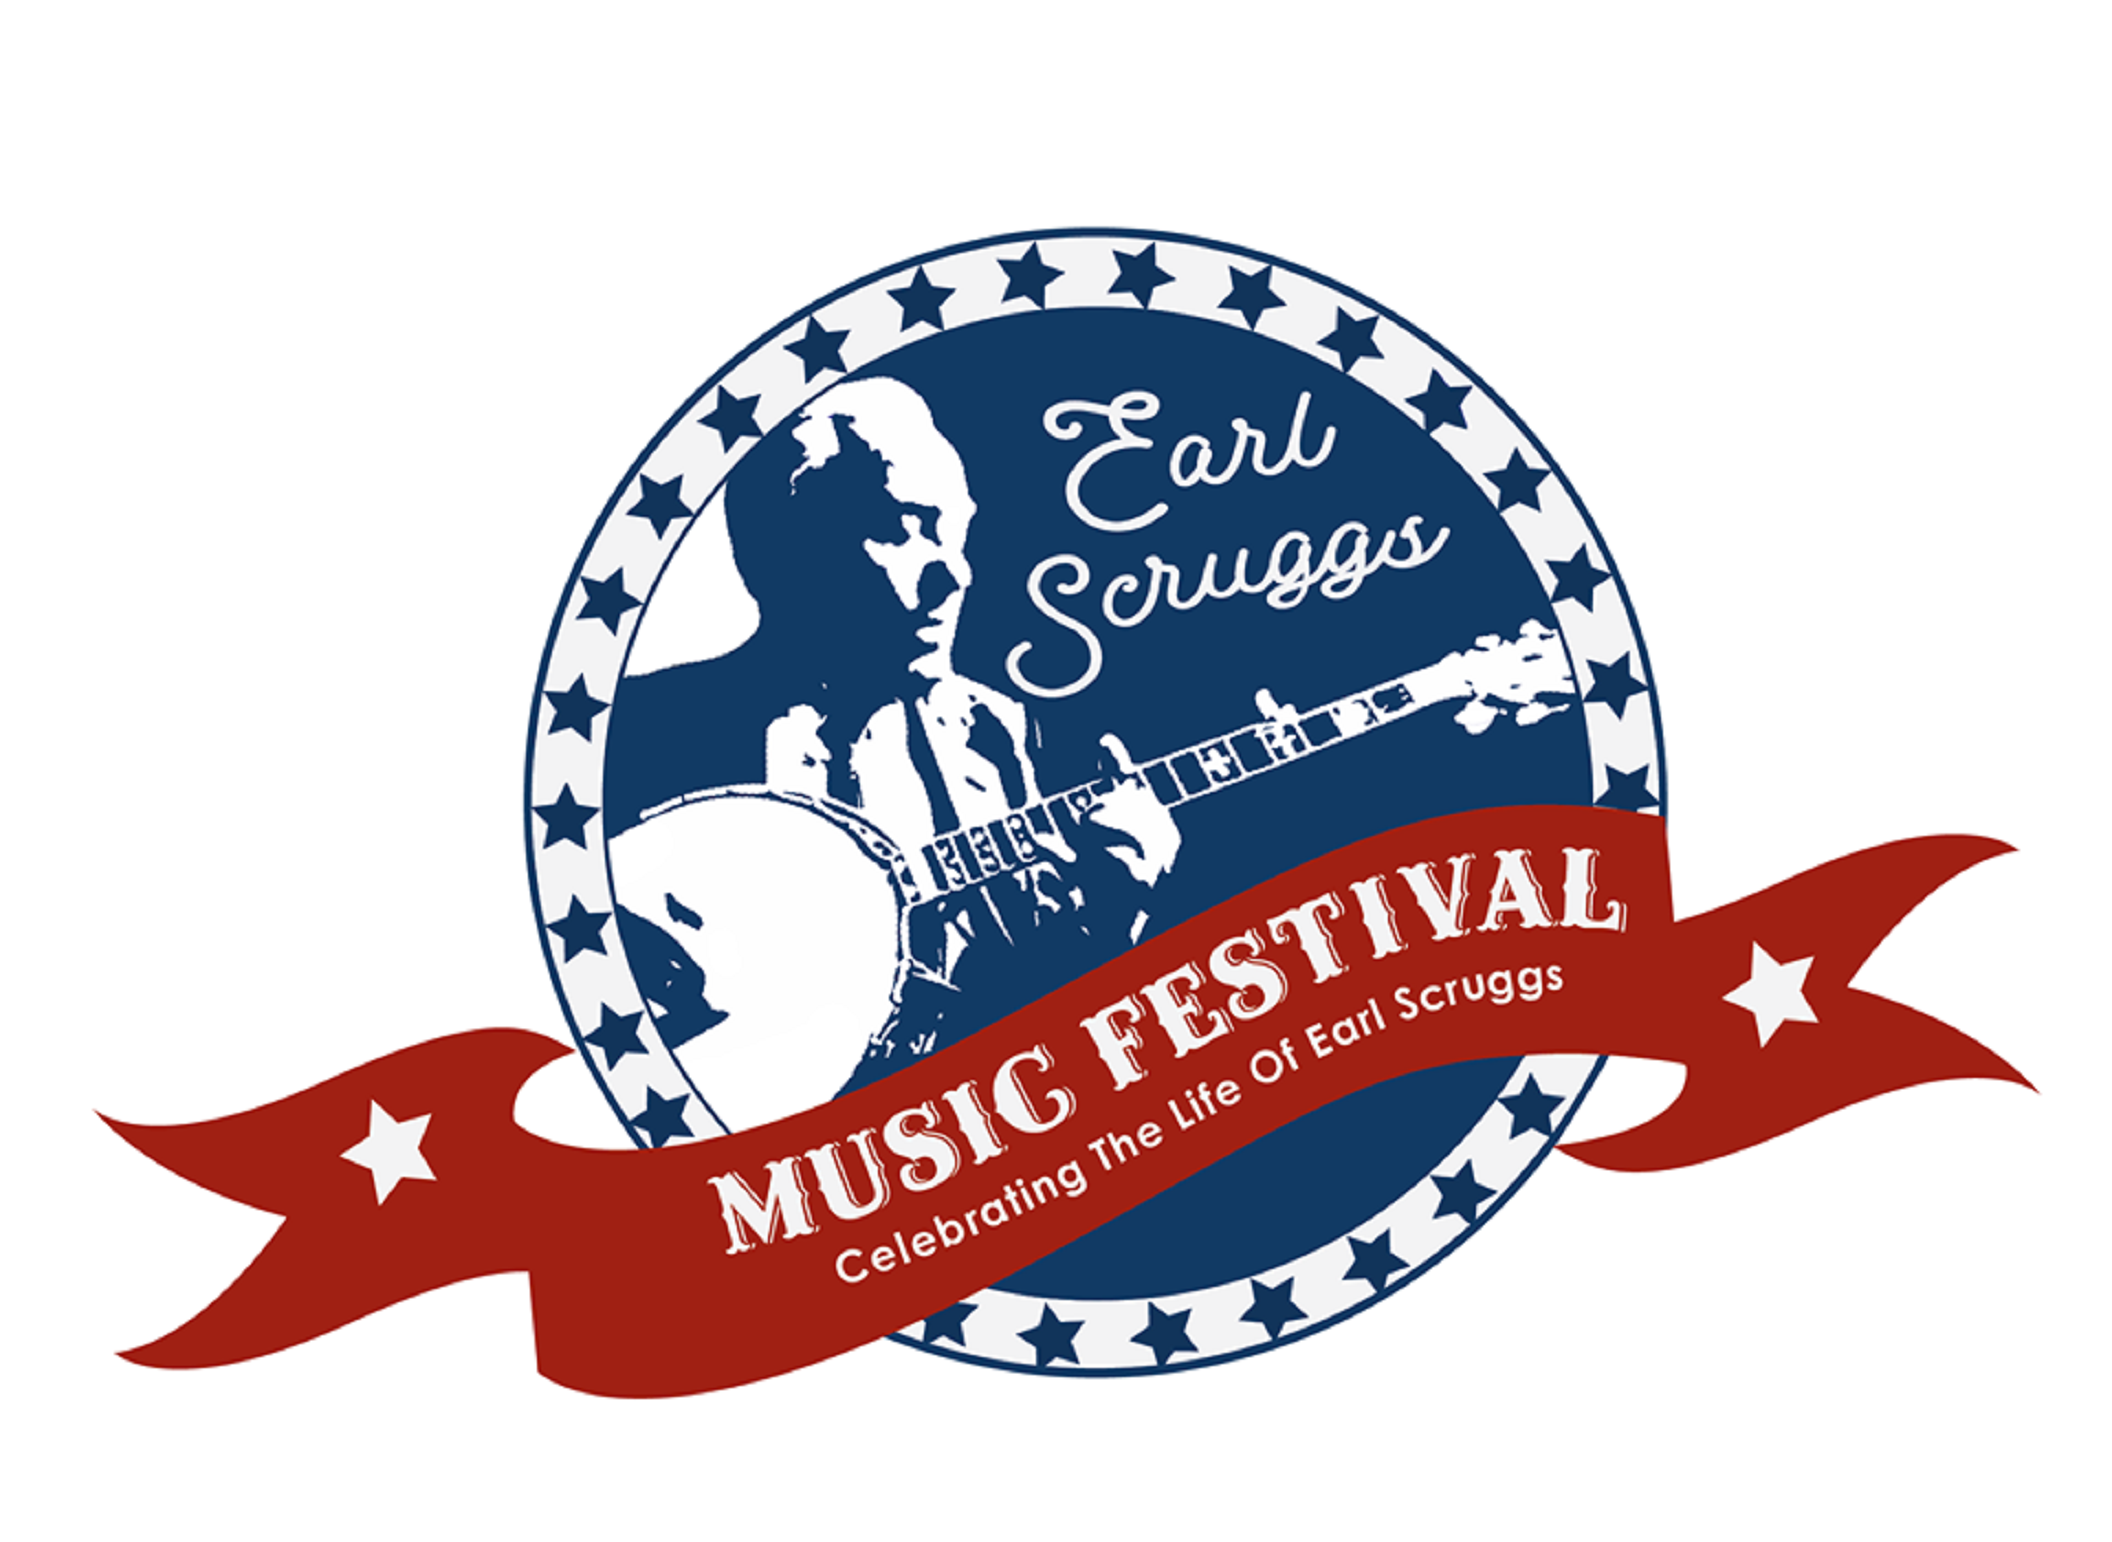 Announcing the inaugural Earl Scruggs Music Festival